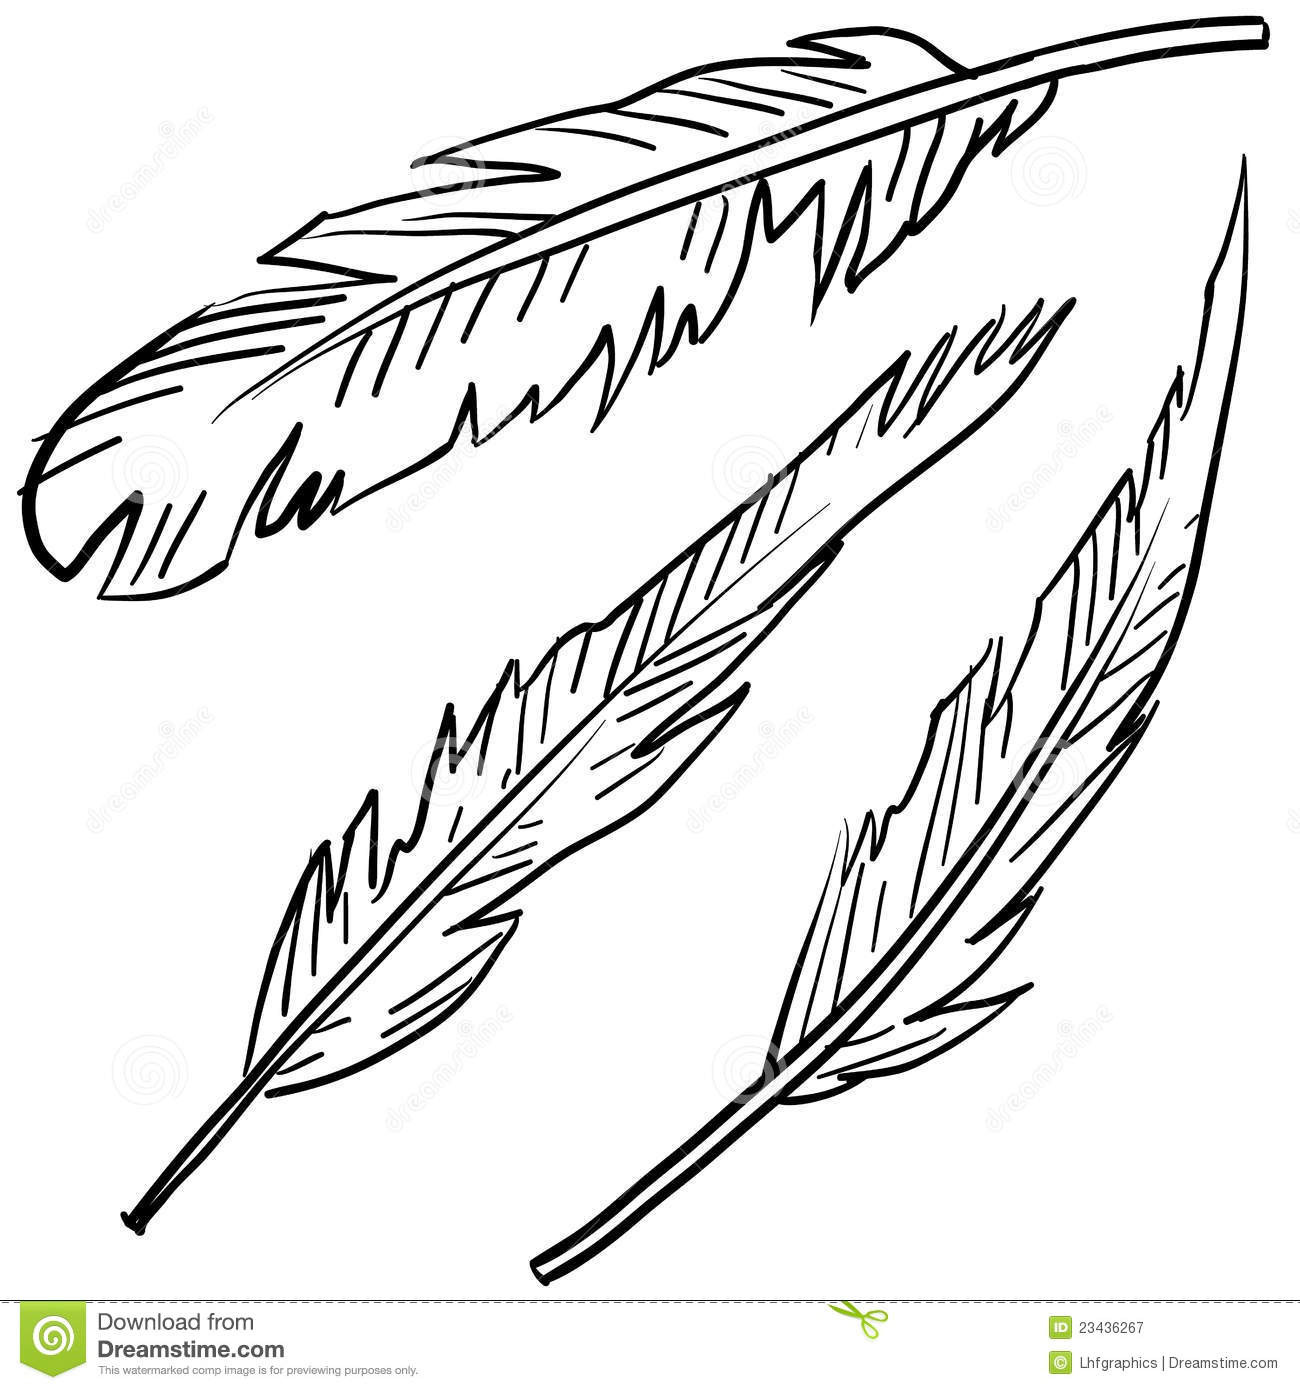 Indian Feathers Coloring Pages At Getcolorings